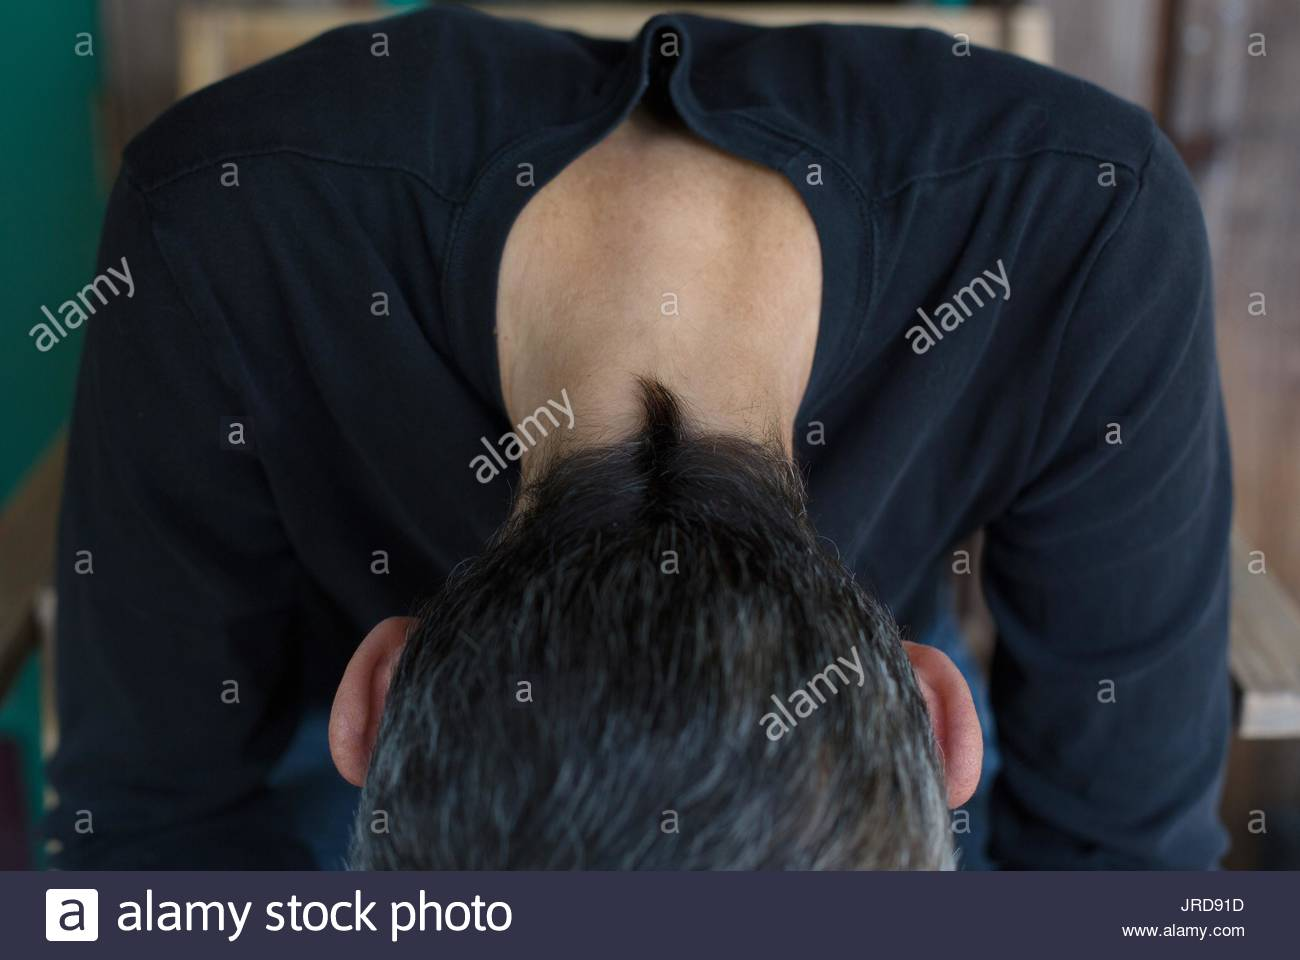 Close up of the back of a woman's head, with very short hair. - Stock Image